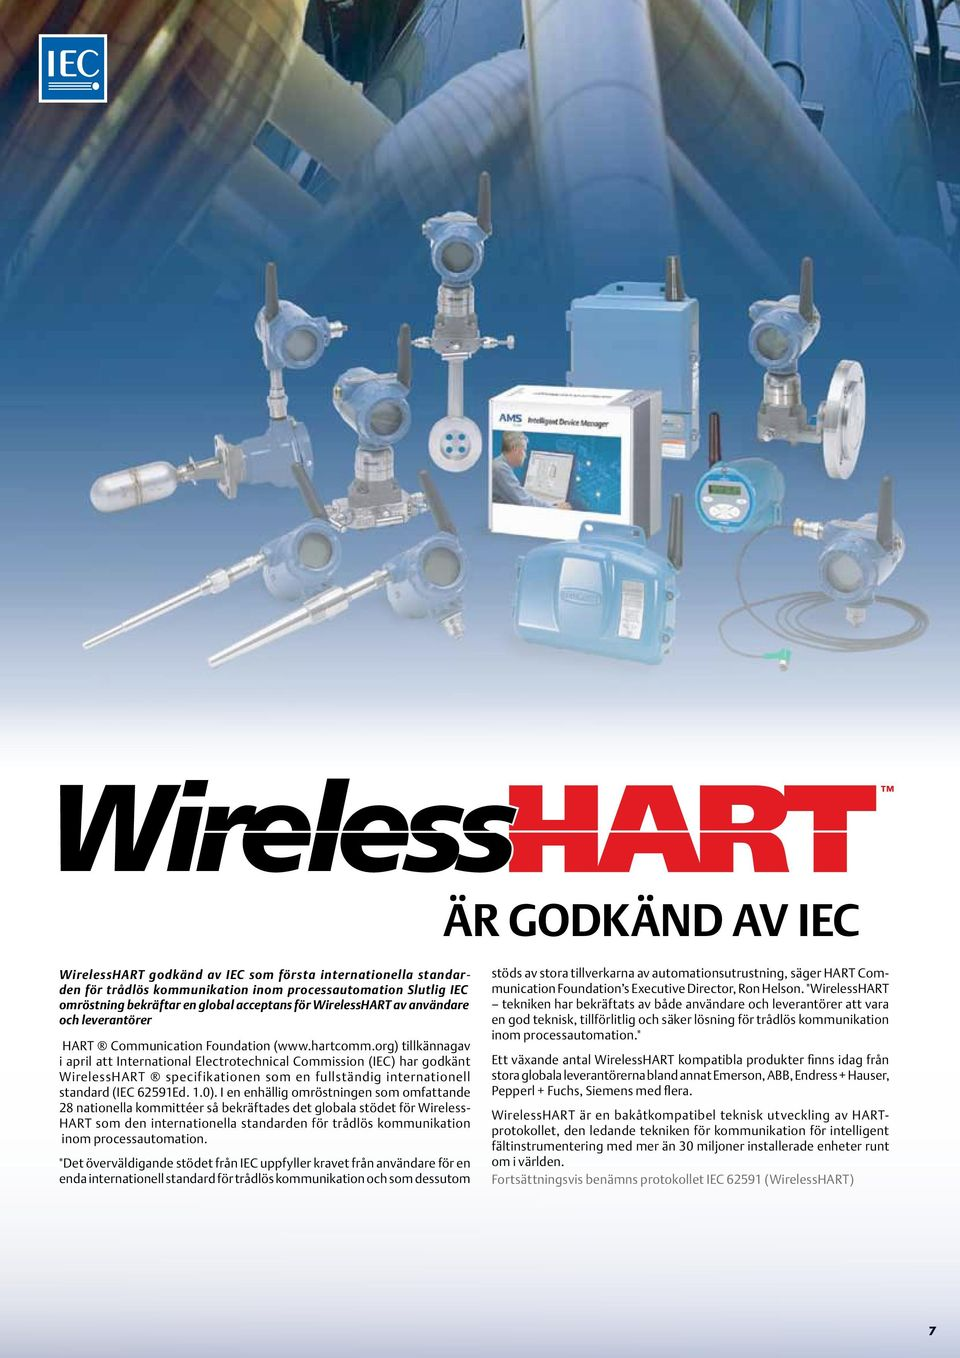 org) tillkännagav i april att International Electrotechnical Commission (IEC) har godkänt WirelessHART specifikationen som en fullständig internationell standard (IEC 62591Ed. 1.0).